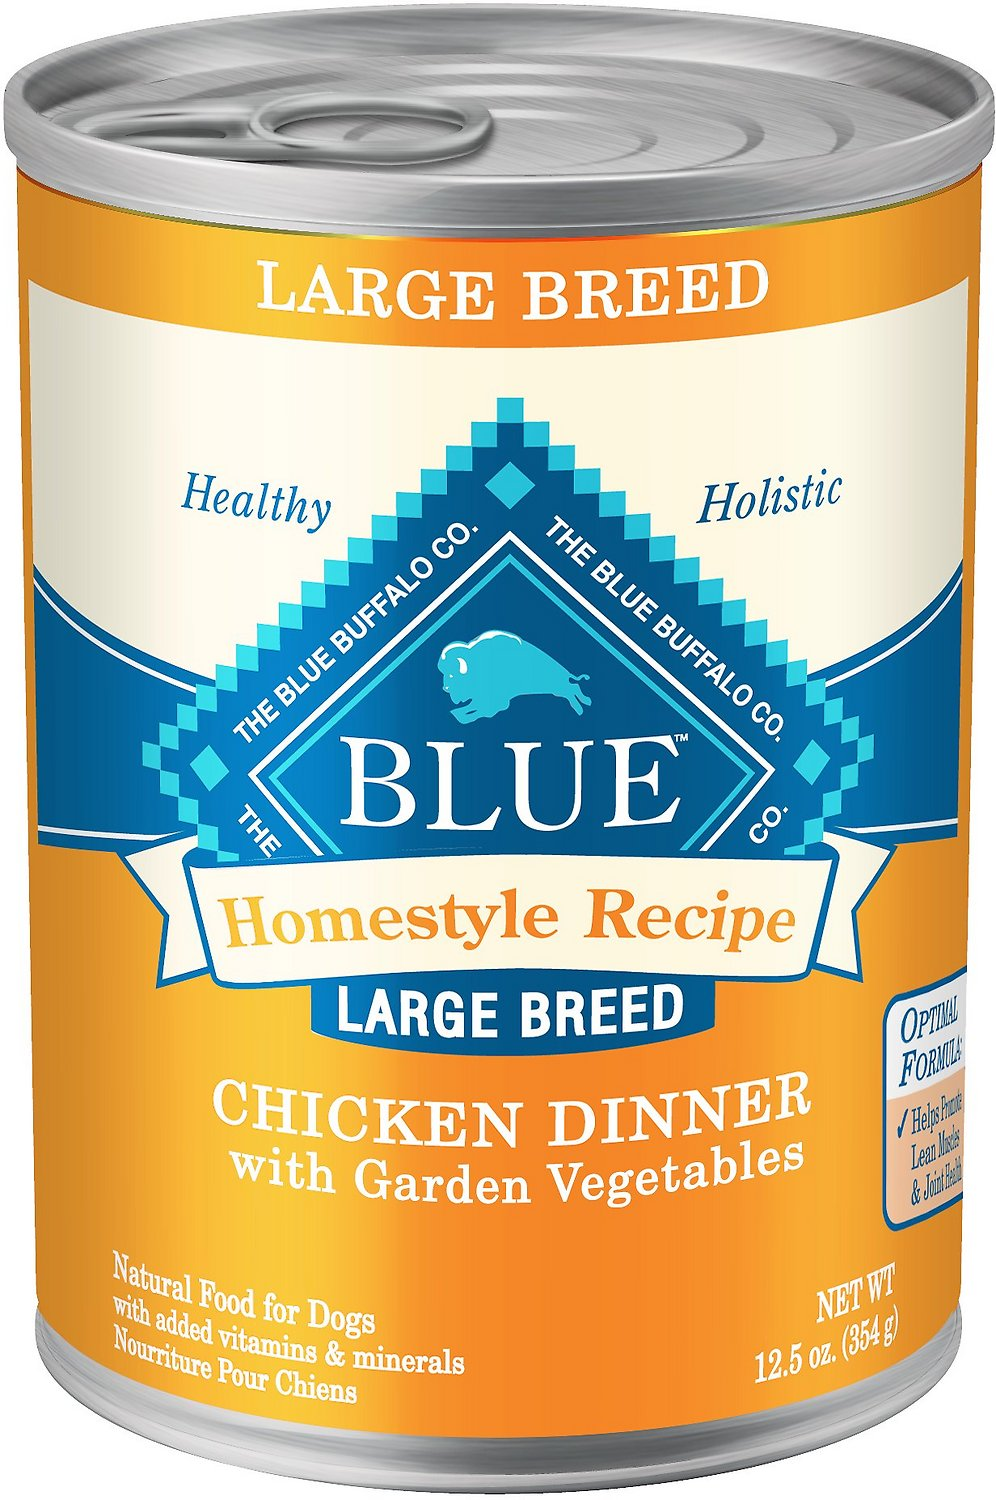 Blue Buffalo Homestyle Recipe Large Breed Chicken Dinner with Garden Vegetables Canned Dog Food, 12.5-oz